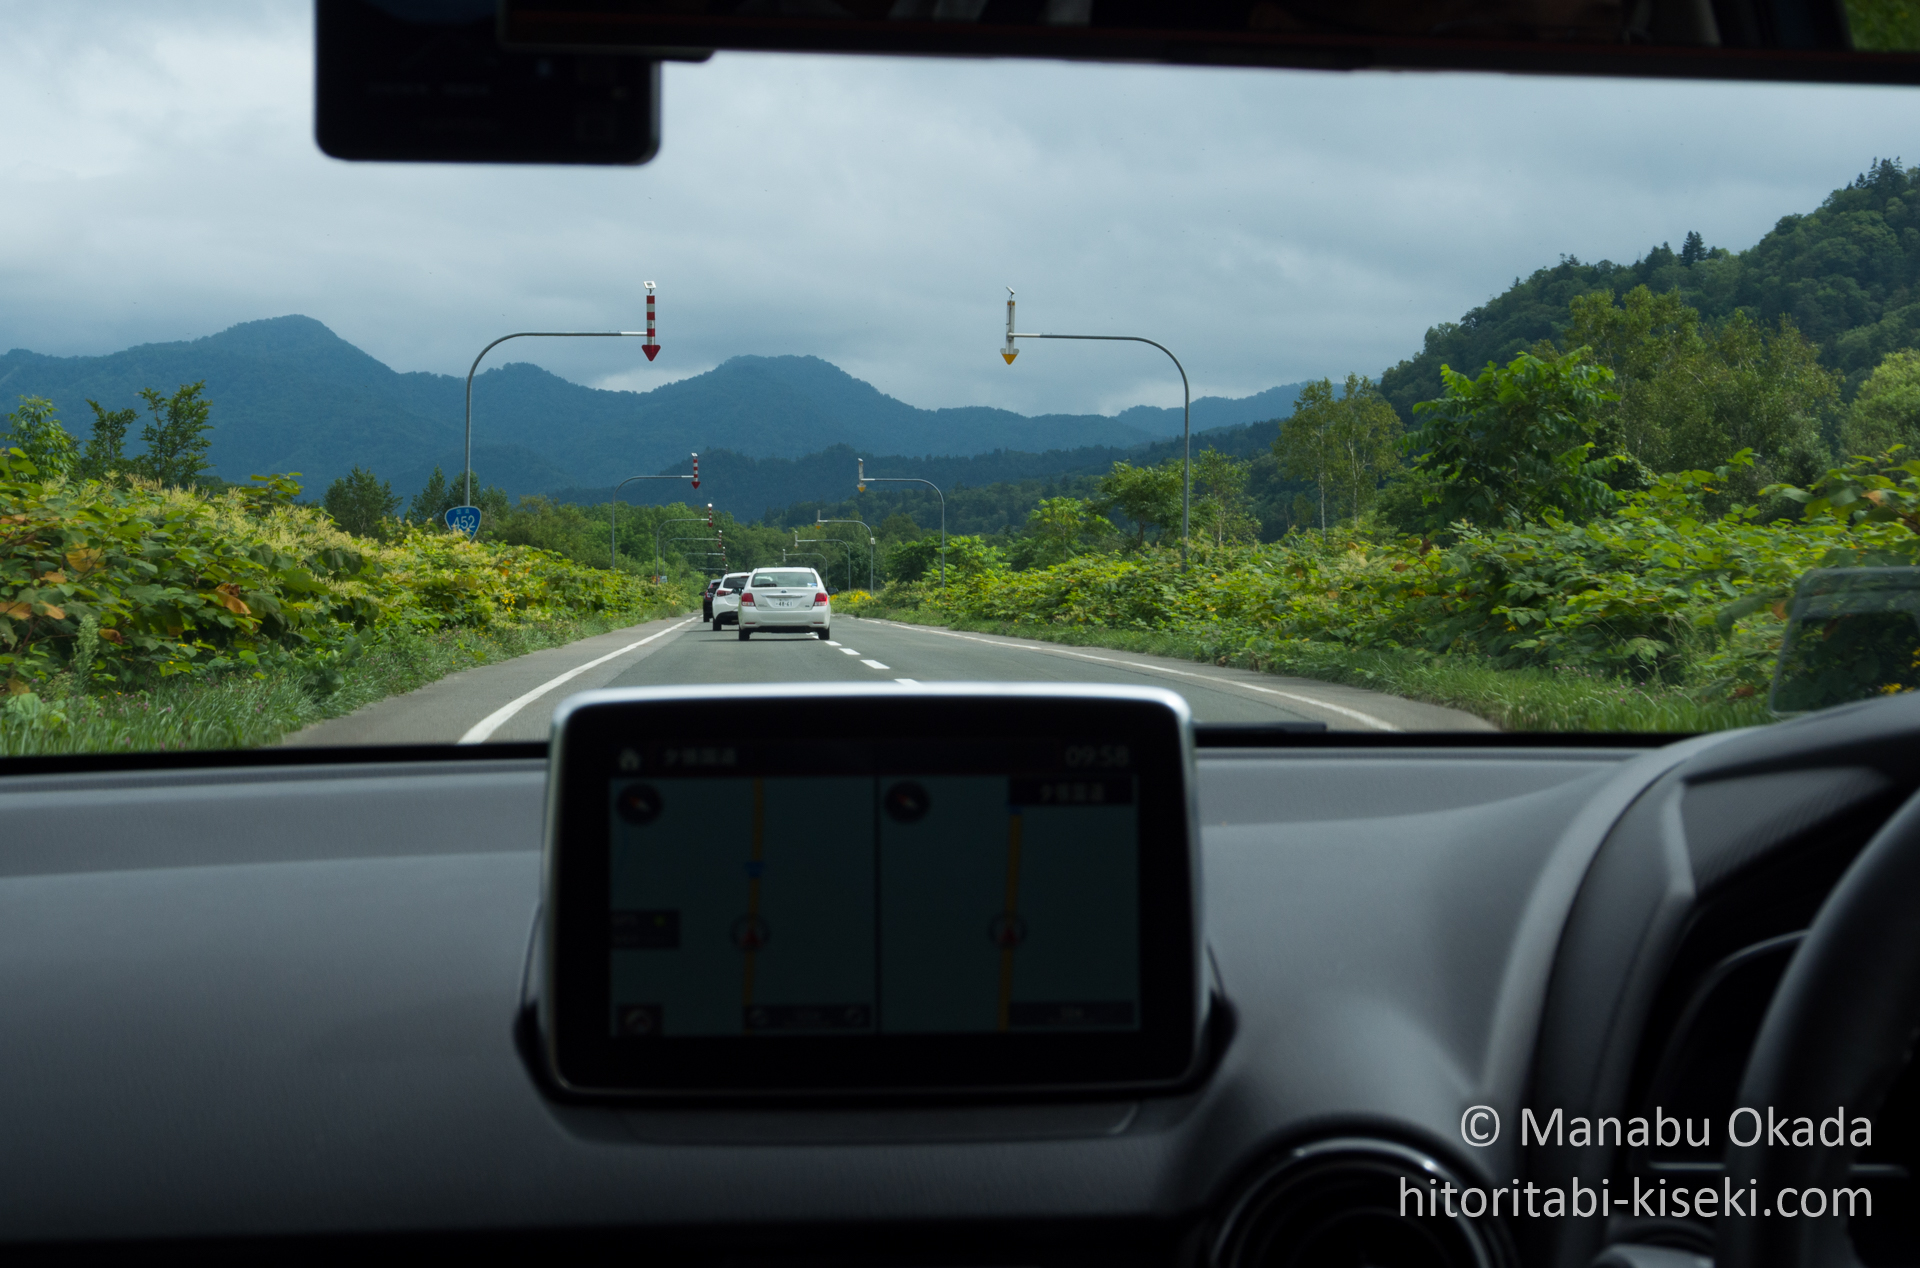 travel-20150816-1st-g.jpg